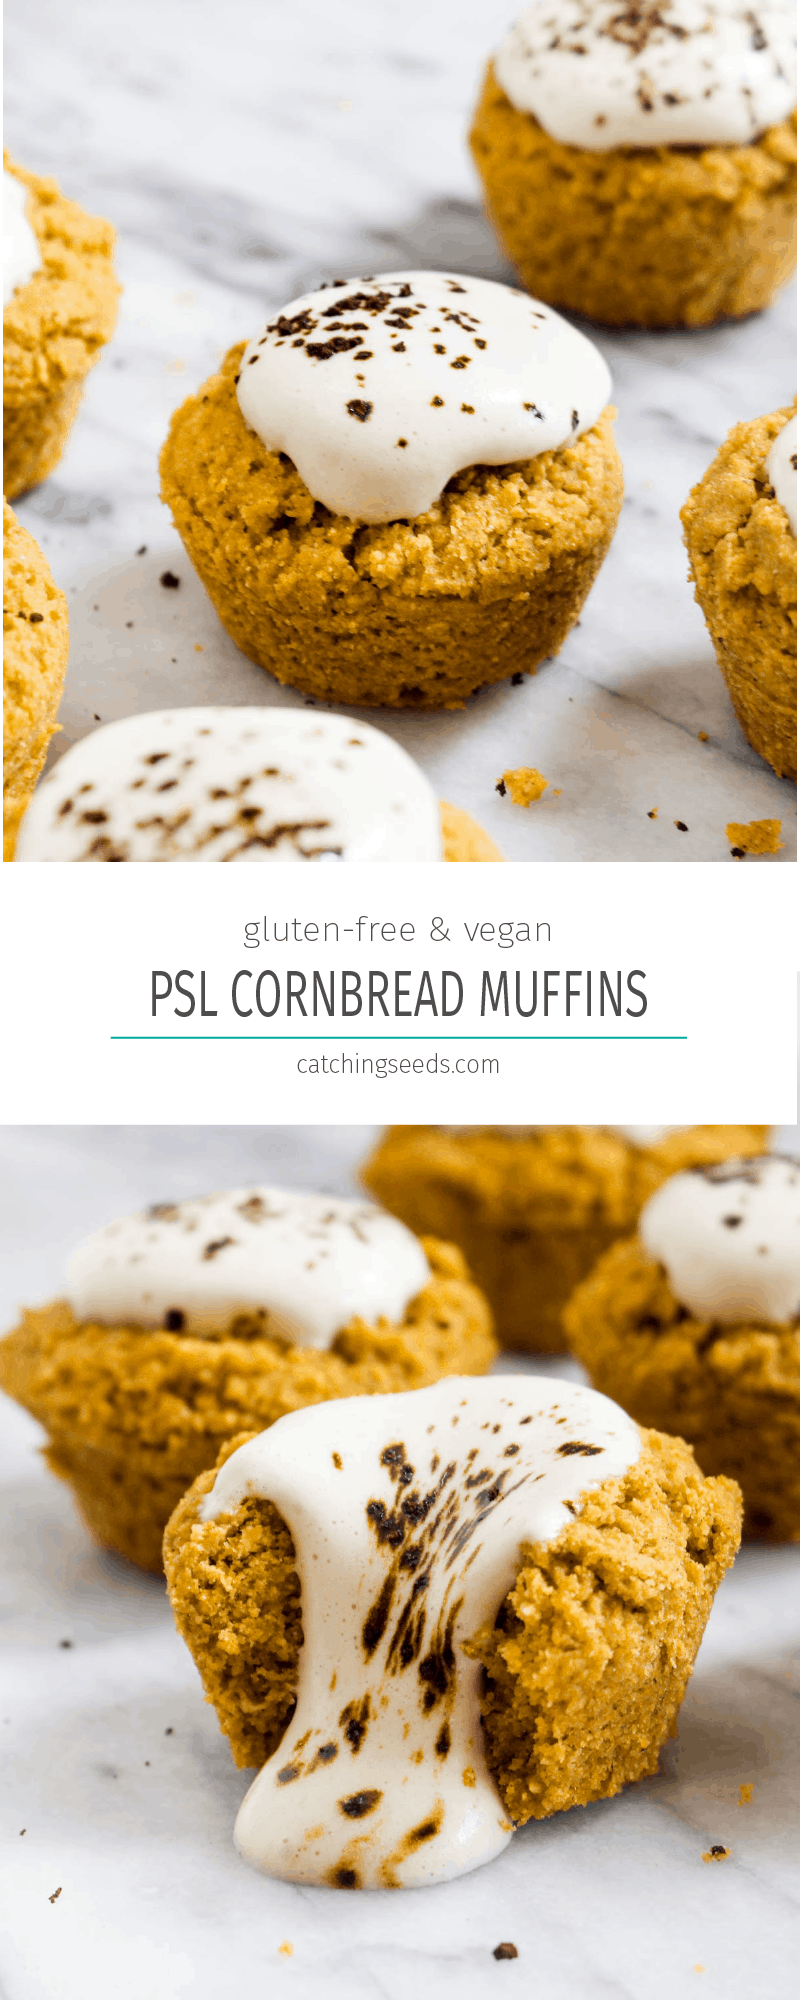 These Pumpkin Spice Latte Cornbread Muffins with Coffee Cream are a crazy twist on a classic PSL. This recipe has all the flavors in a sweet dessert form. | CatchingSeeds.com